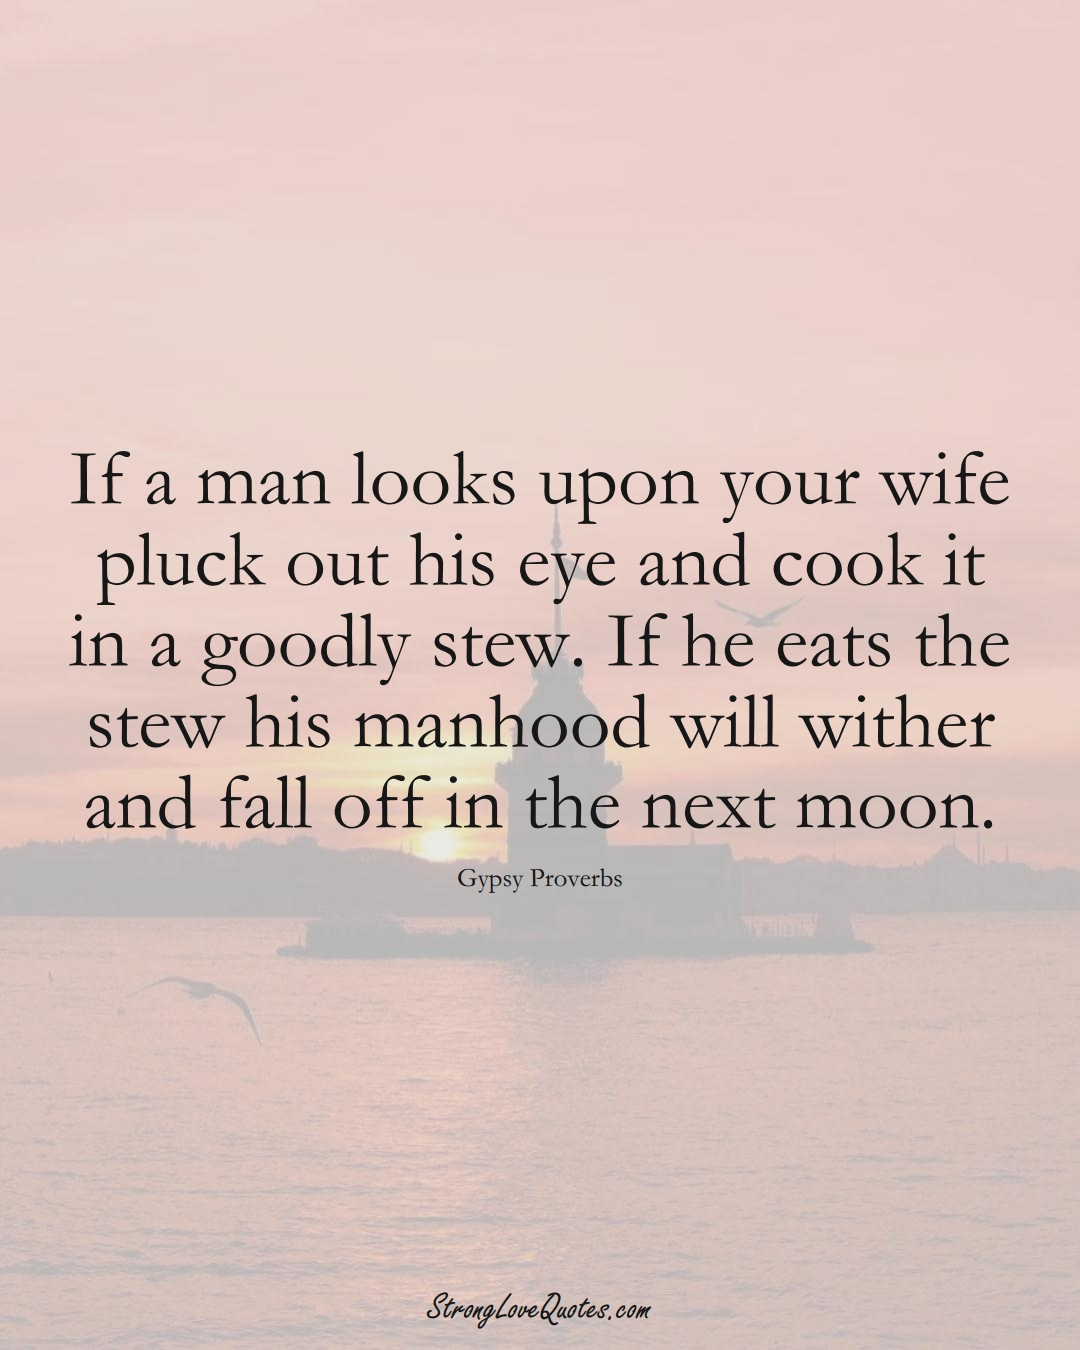 If a man looks upon your wife pluck out his eye and cook it in a goodly stew. If he eats the stew his manhood will wither and fall off in the next moon. (Gypsy Sayings);  #aVarietyofCulturesSayings